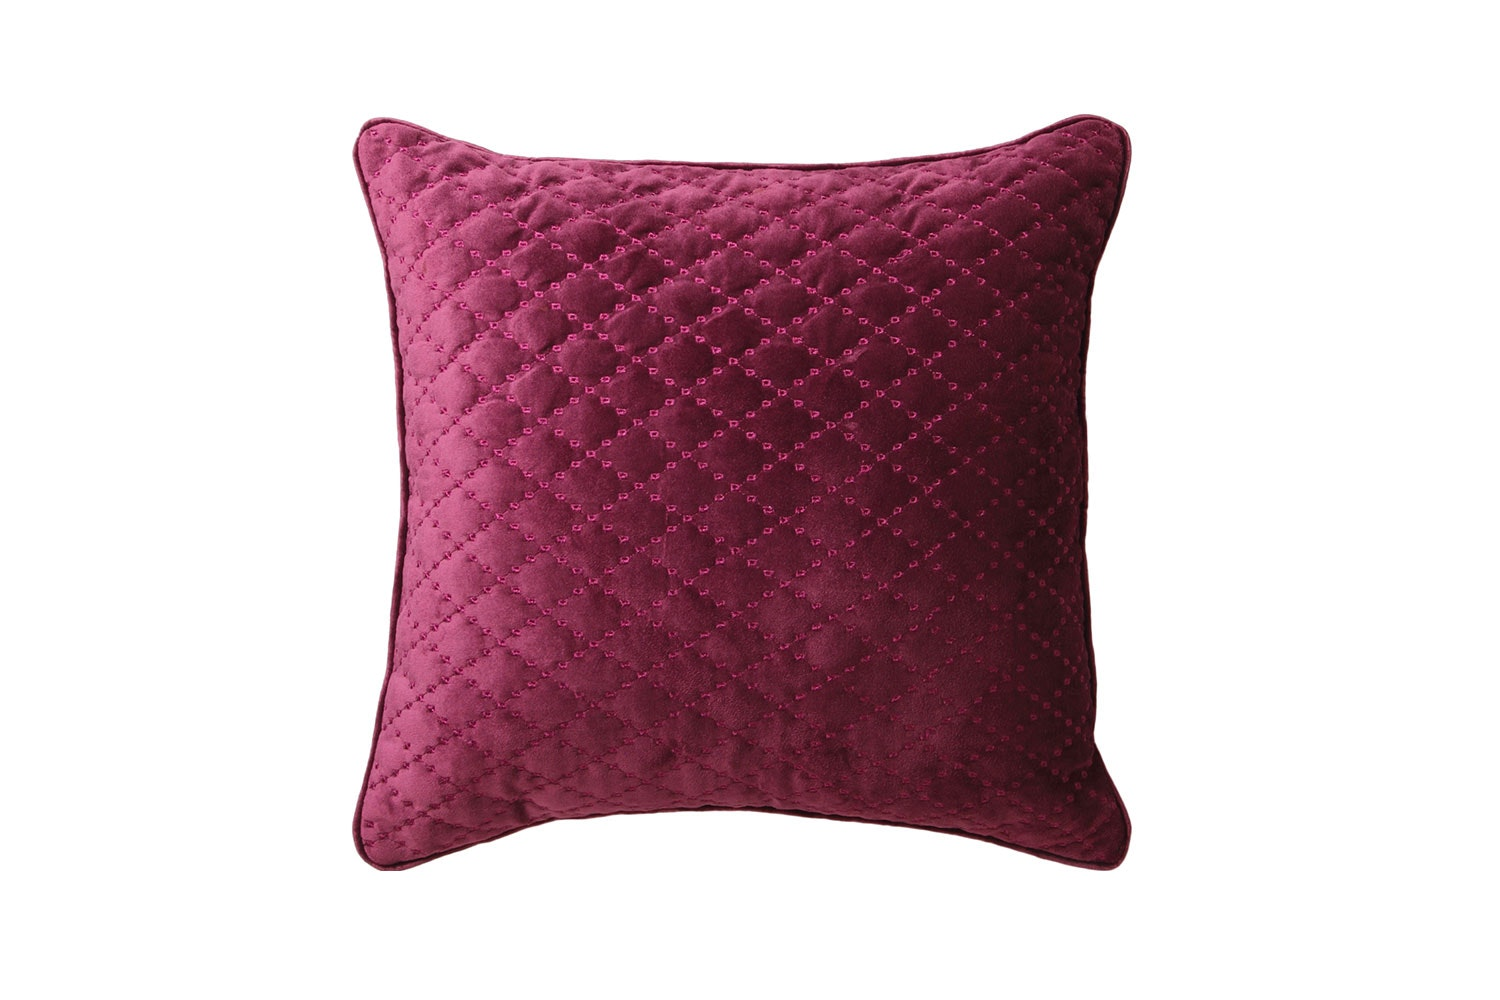 Antique Lattice Accessory Range by Florence Broadhurst - Plum Square Cushion